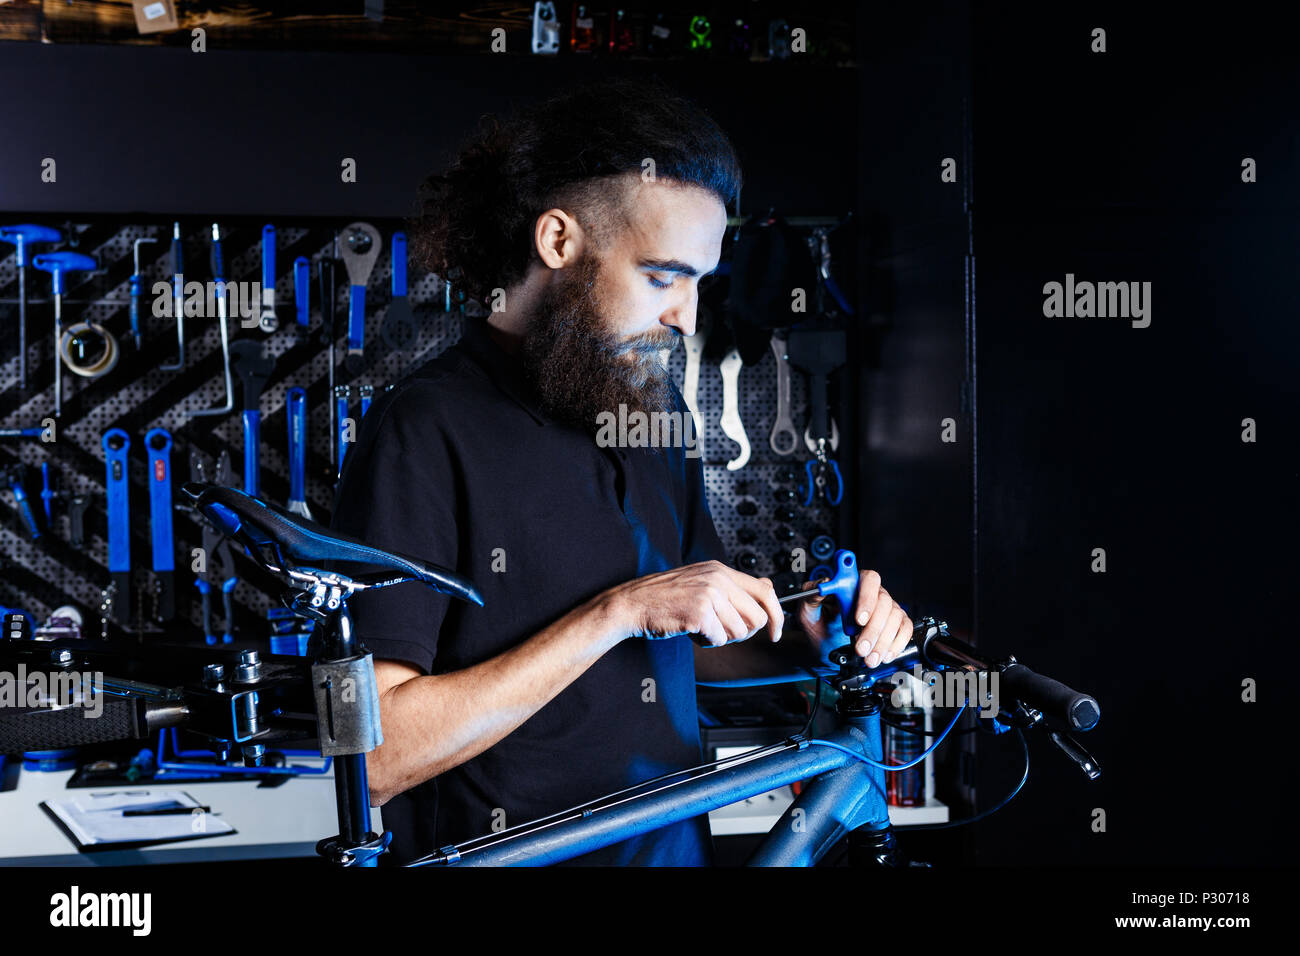 Theme sale and repair of bicycles. Young and stylish with a beard and long hair, a Caucasian man uses a tool to set up and repair a bike in a store. Business owner at work - Stock Image